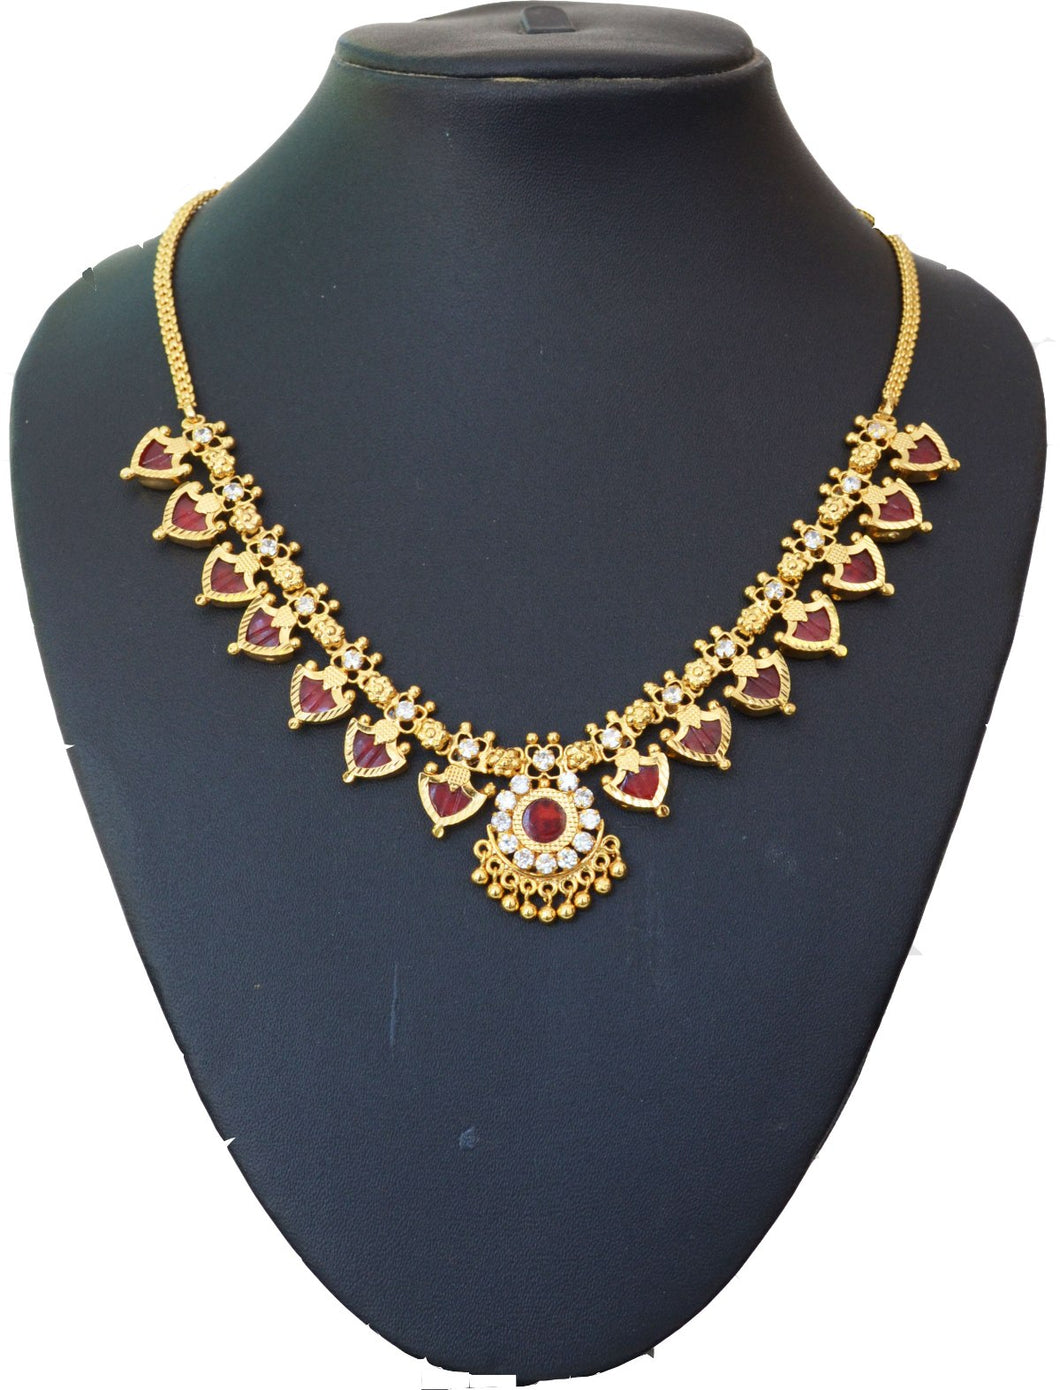 Maroon palakka necklace with 14 palakka -  by Shrayathi